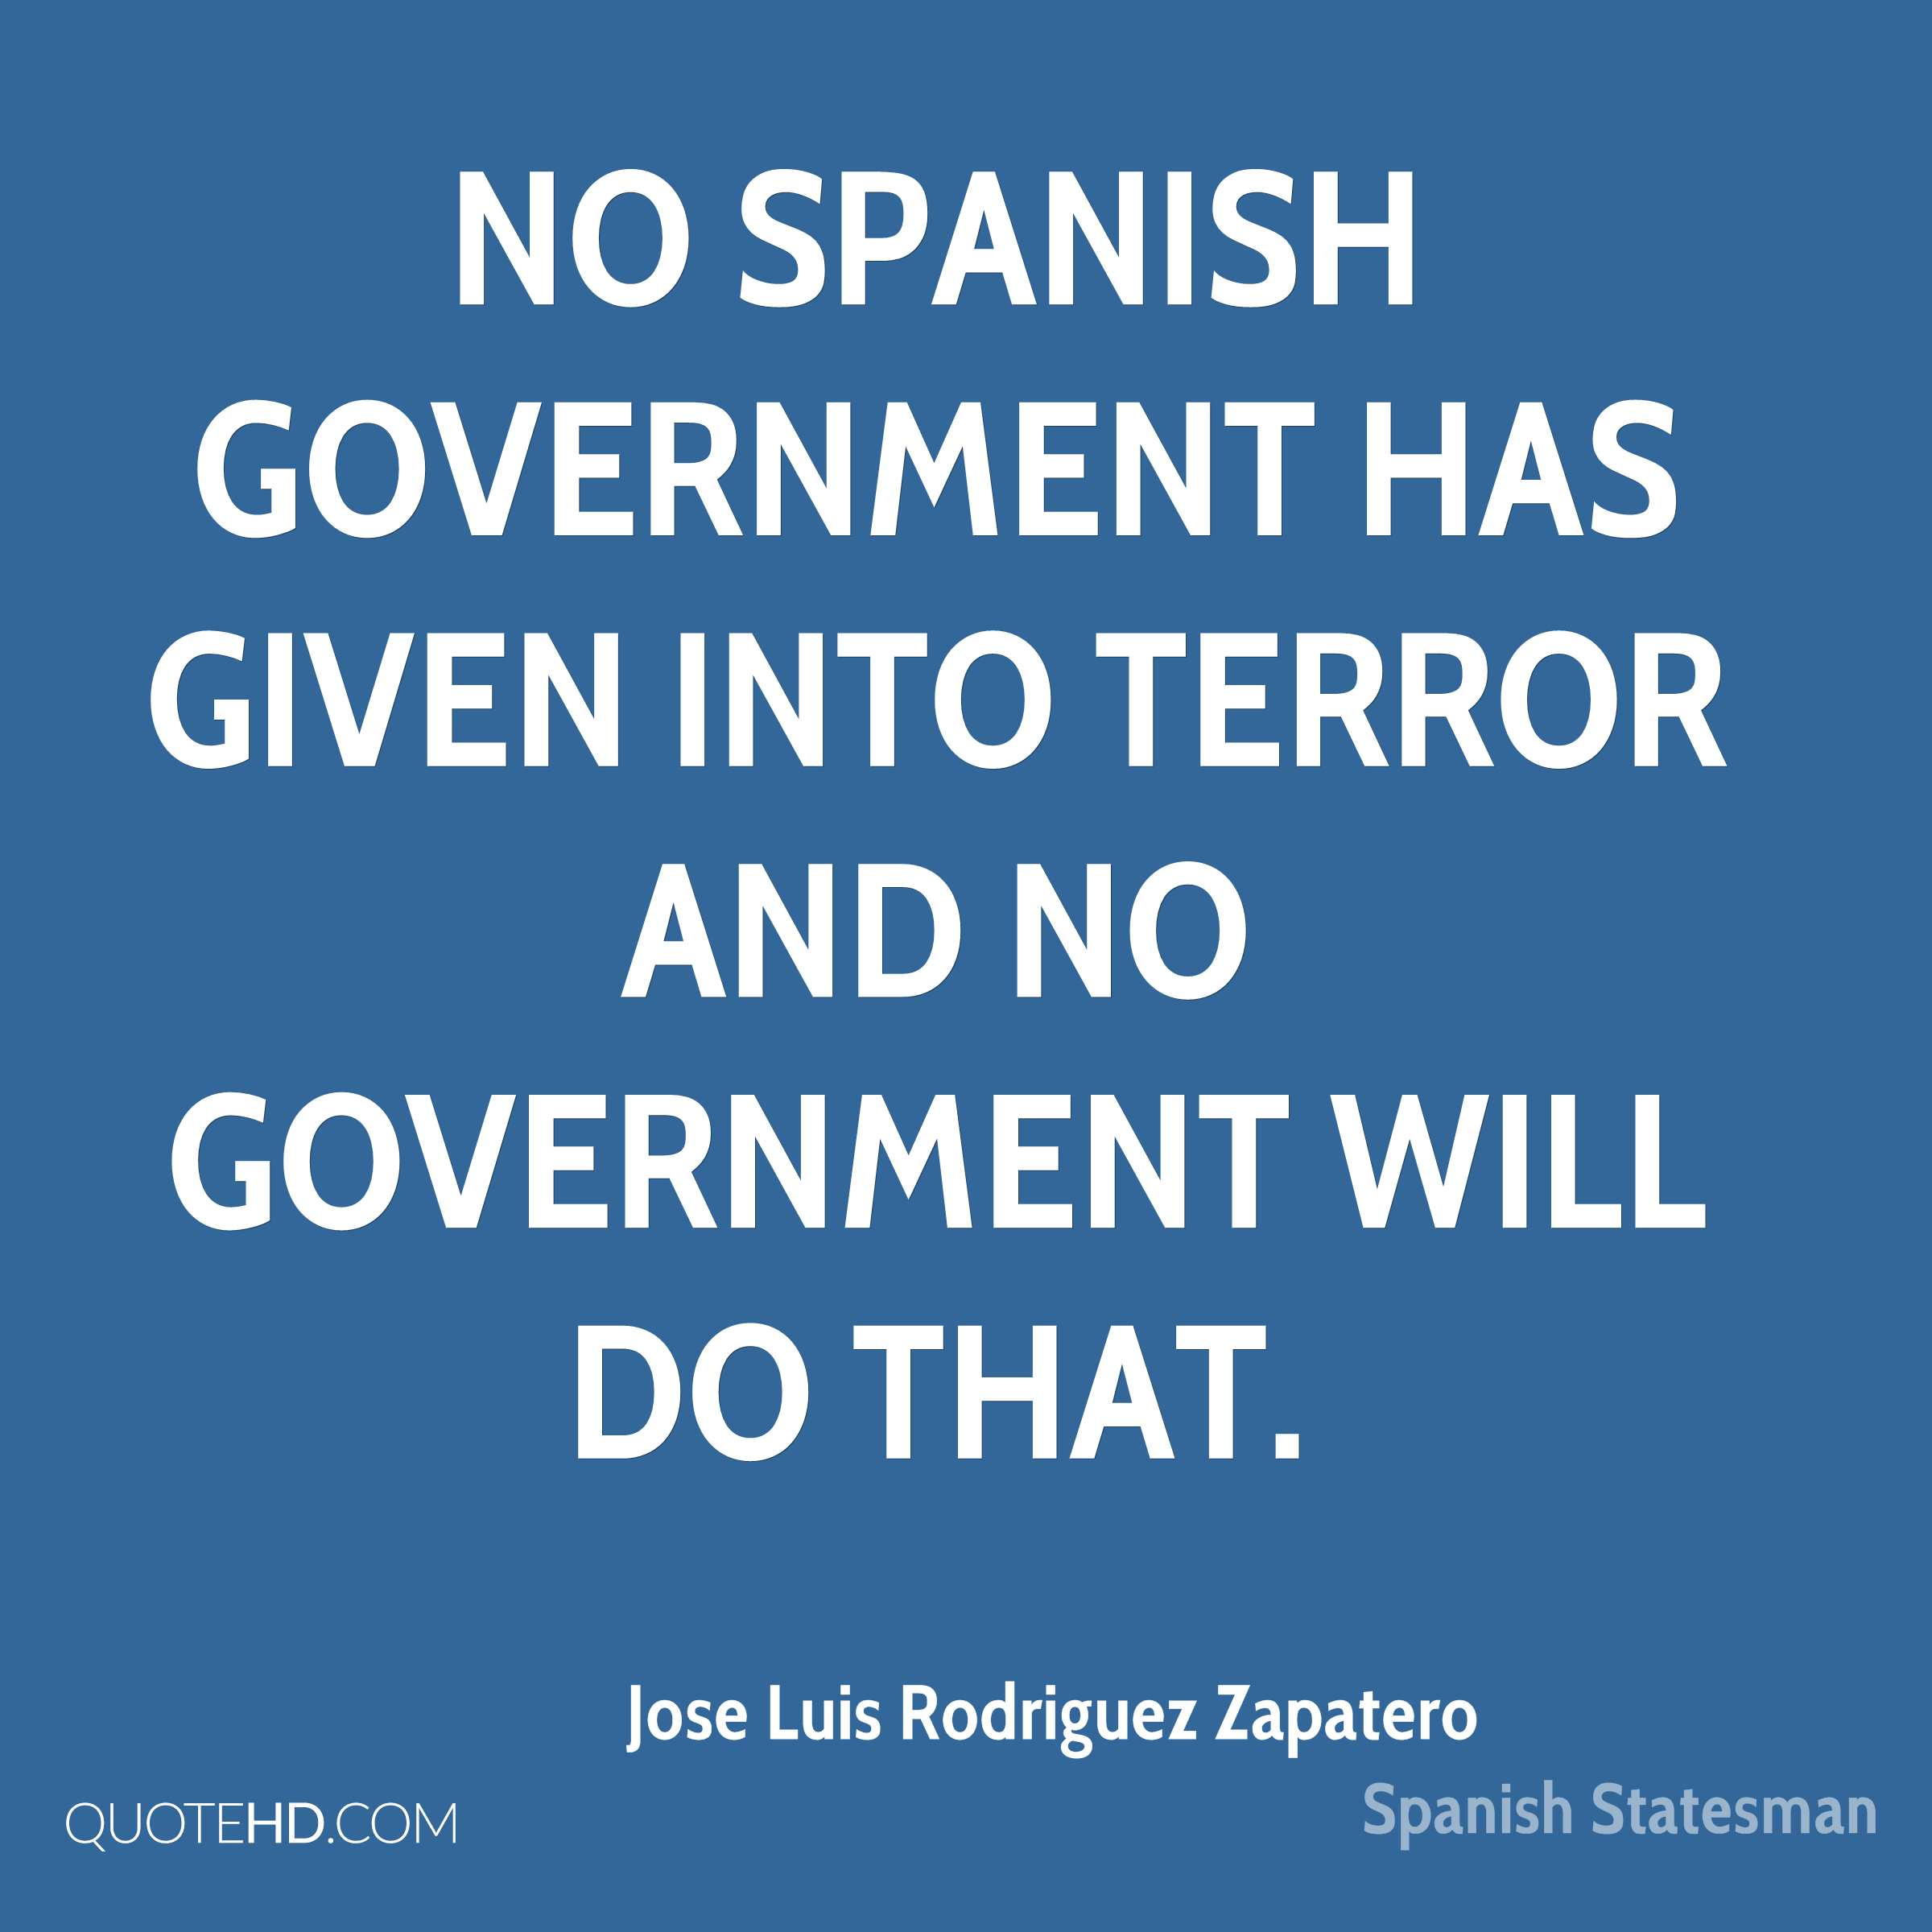 No Spanish government has given into terror and no government will do that.